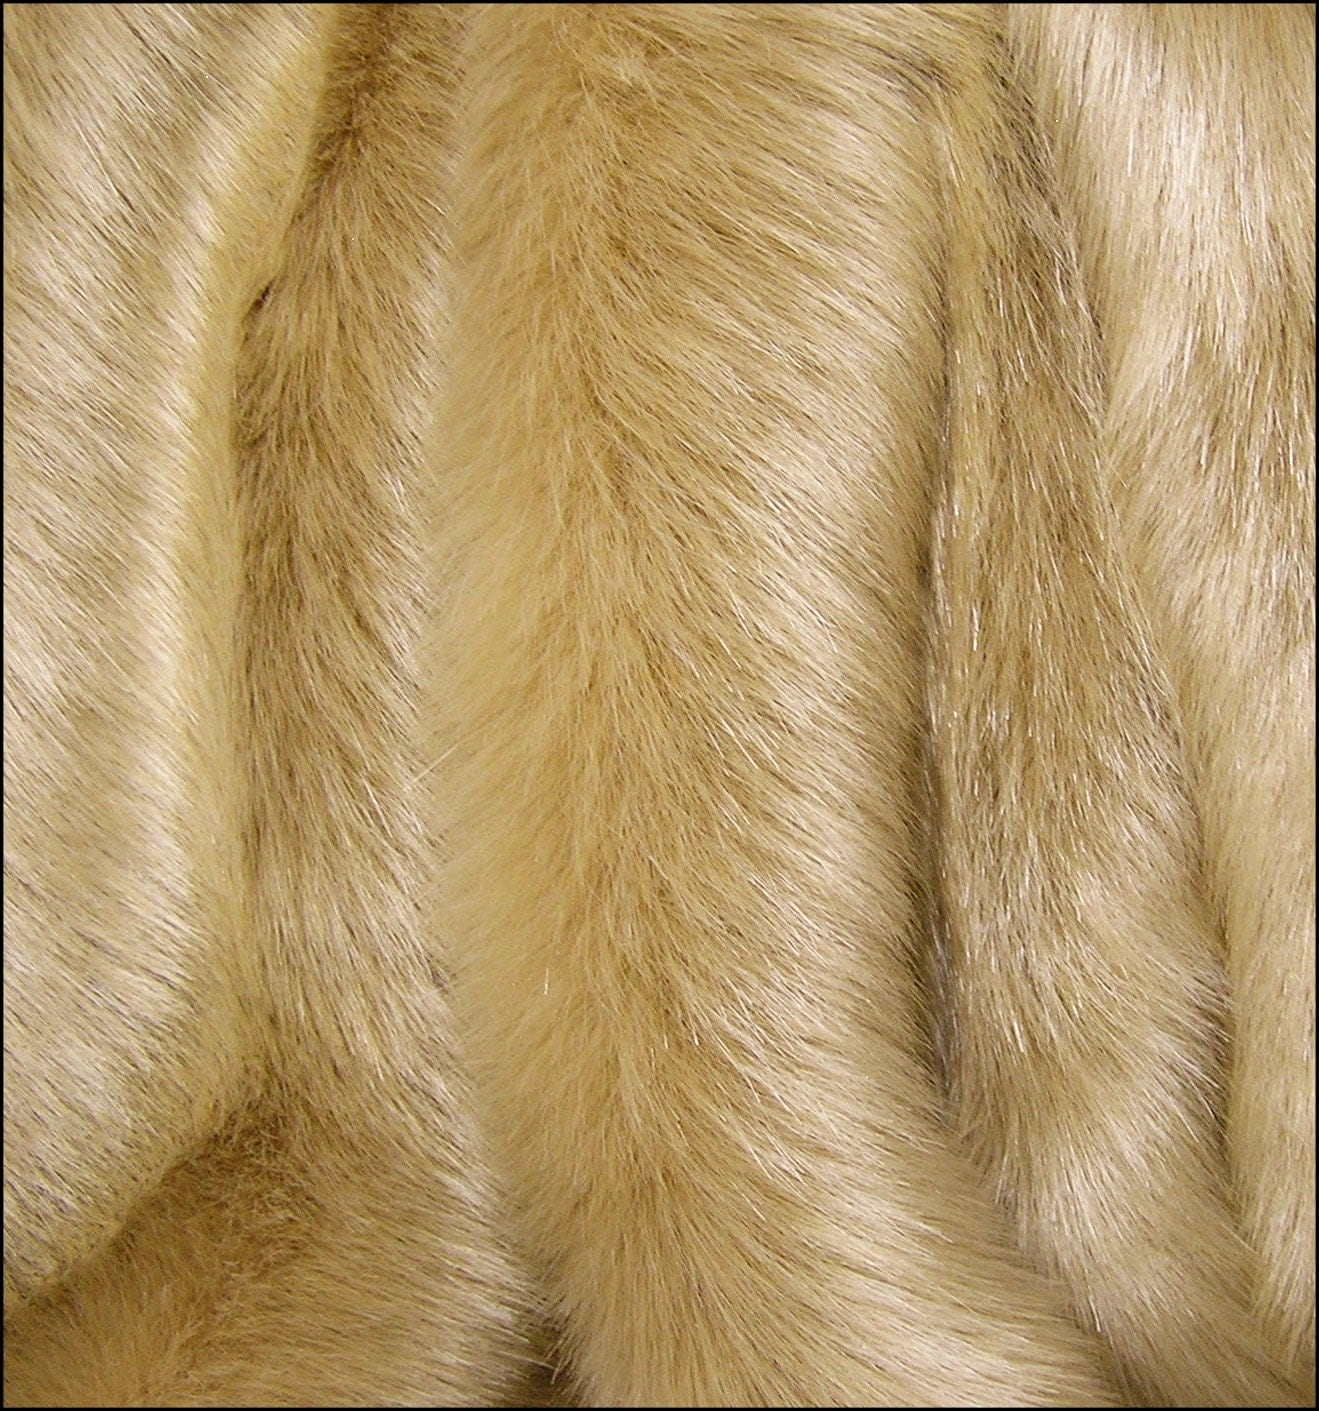 FUR SAMPLE: FAWN Gold Golden Solid Mink Faux Fur Luxury Fur